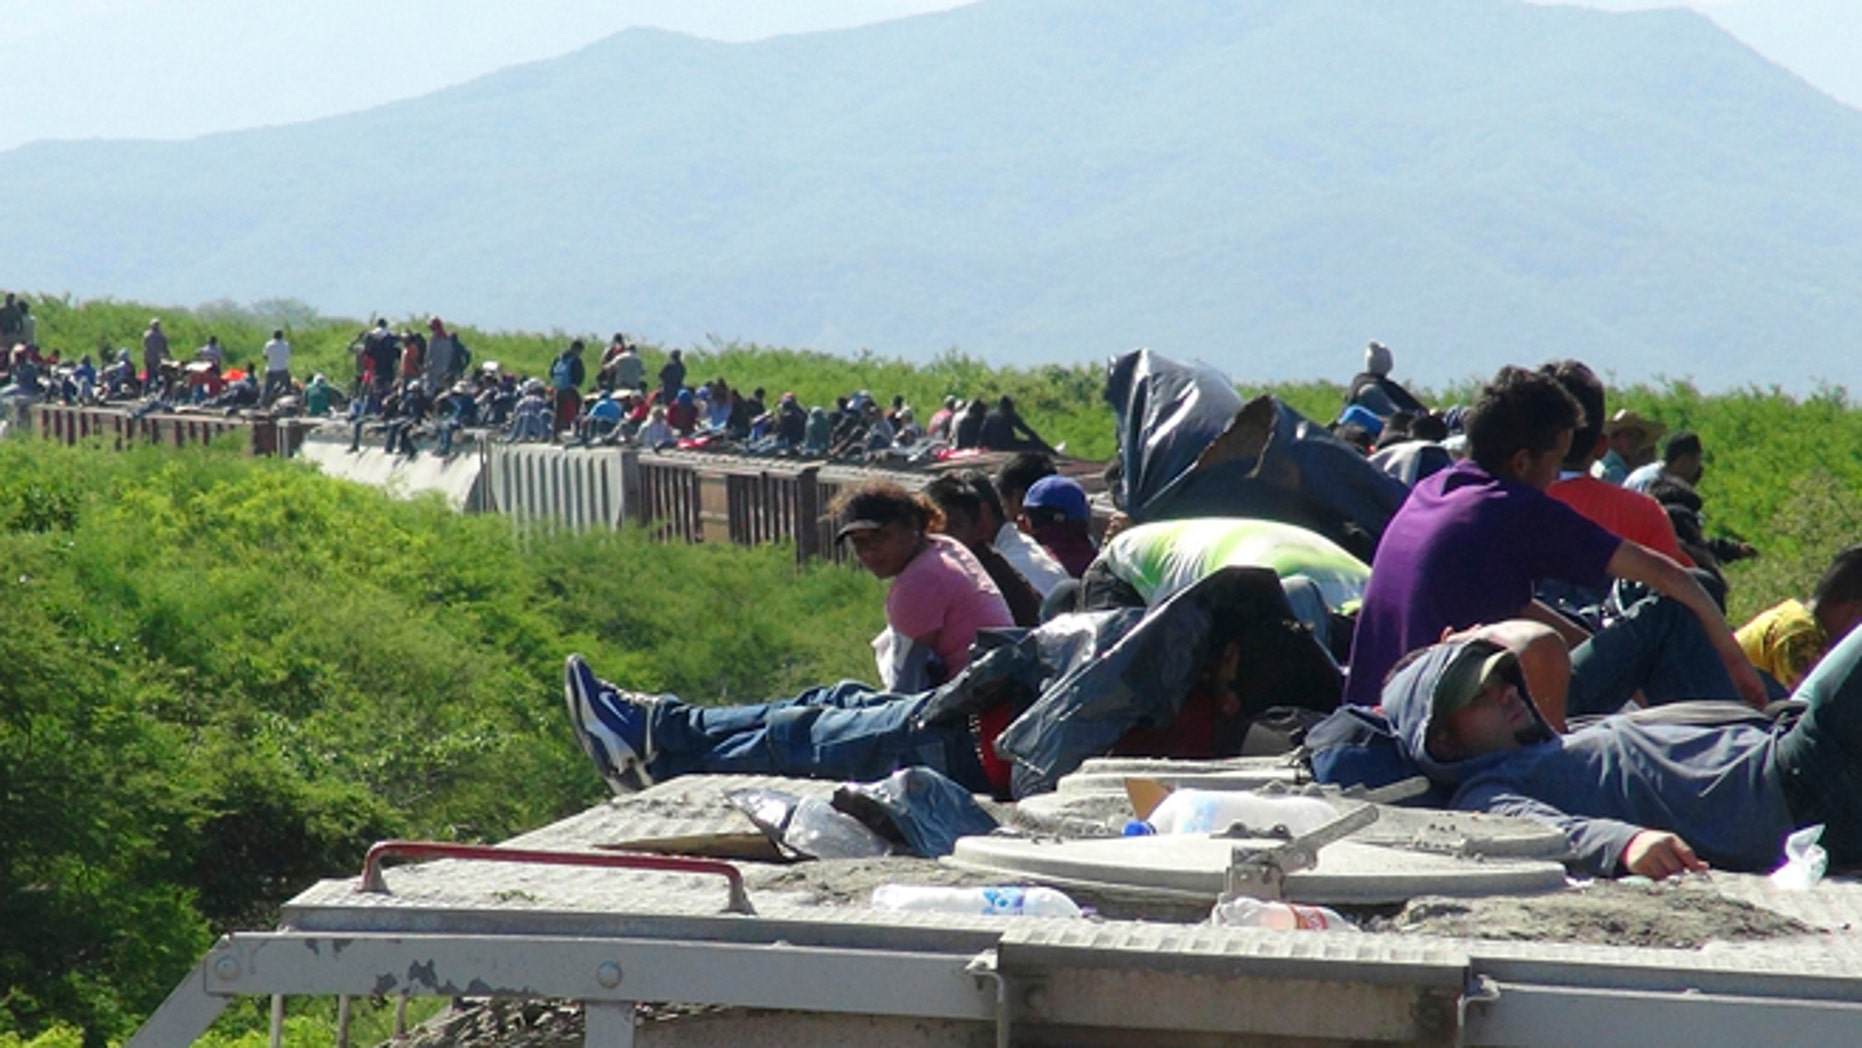 June 18, 2014: People hoping to reach the U.S. ride atop the wagon of a freight train, known as La Bestia (The Beast) in Ixtepec, in the Mexican state of Oaxaca. The train derailed on Wednesday, July 9, leaving about 1,300 migrants stranded, authorities said.